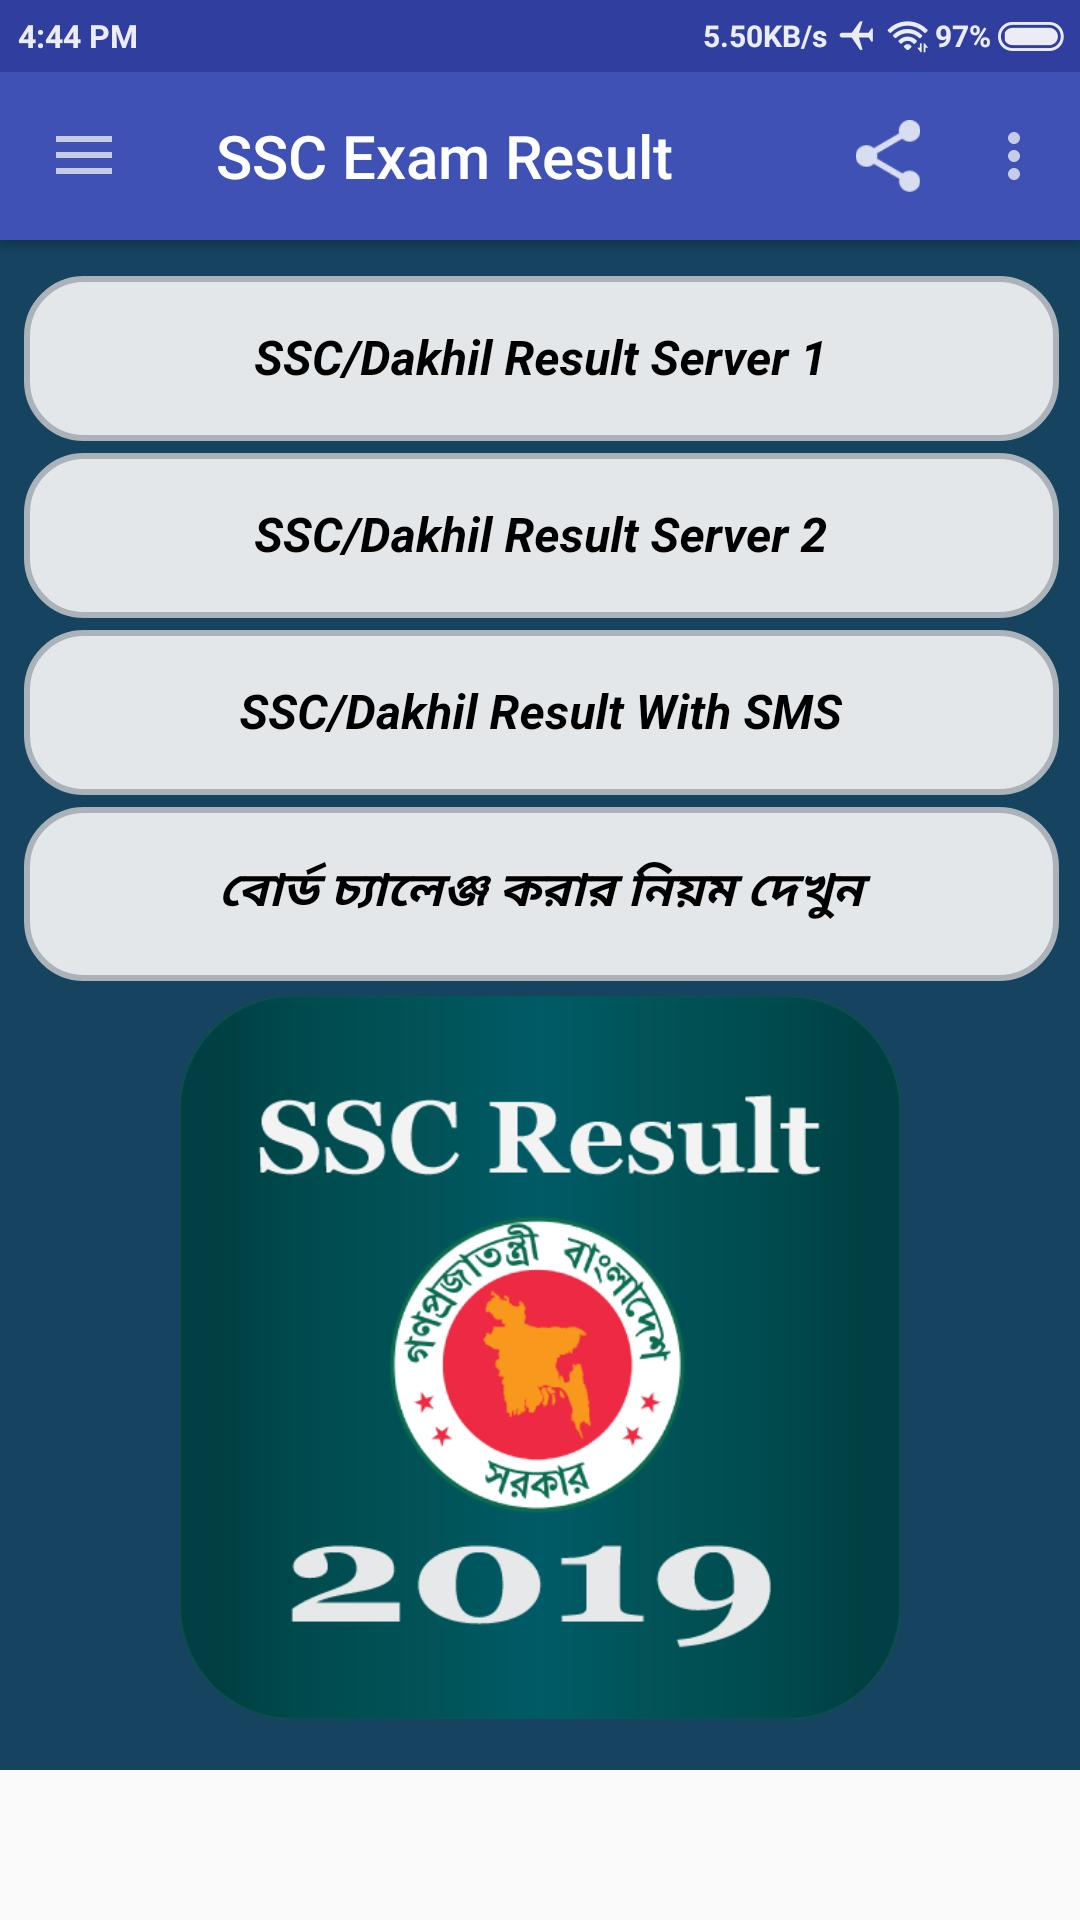 SSC Result 2019 for Android - APK Download